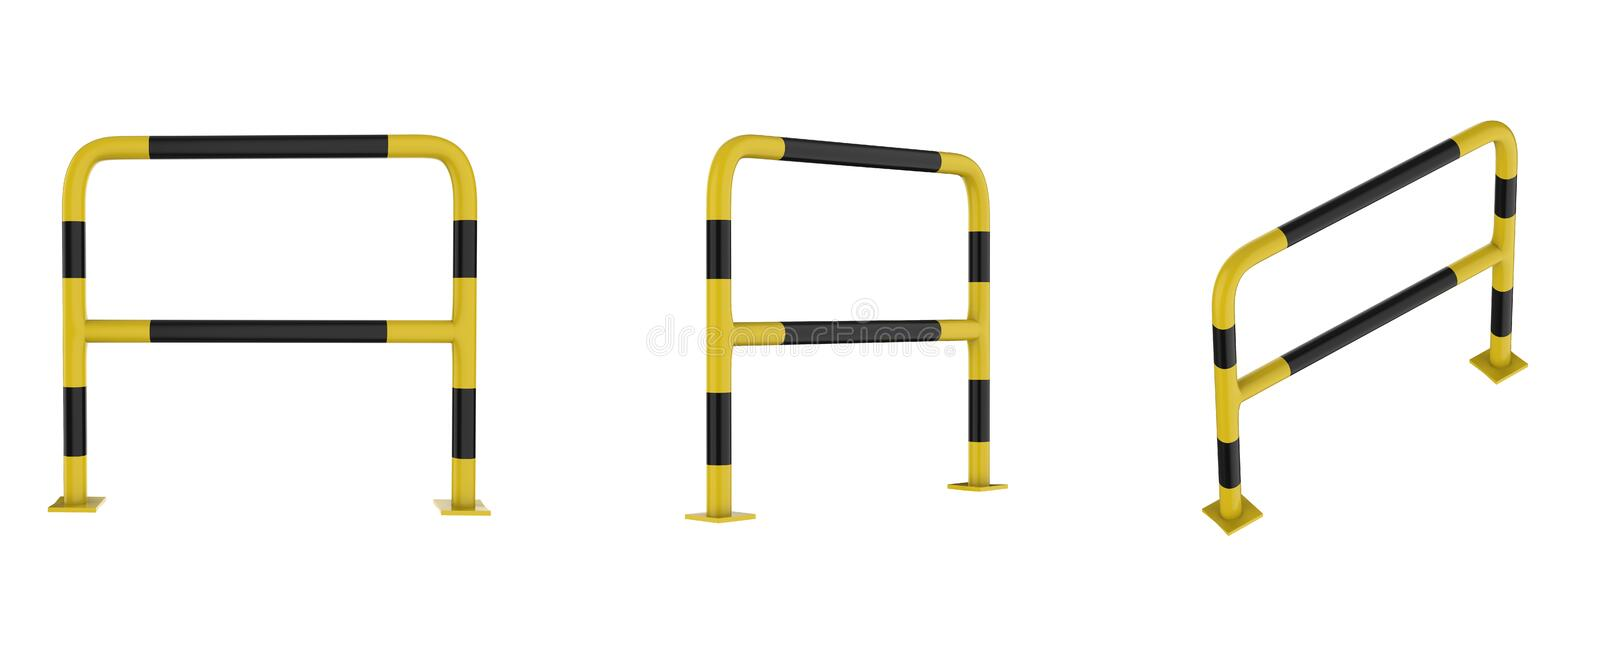 Metal barrier isolated. 3d rendering yellow and black metal barrier isolated on white royalty free illustration